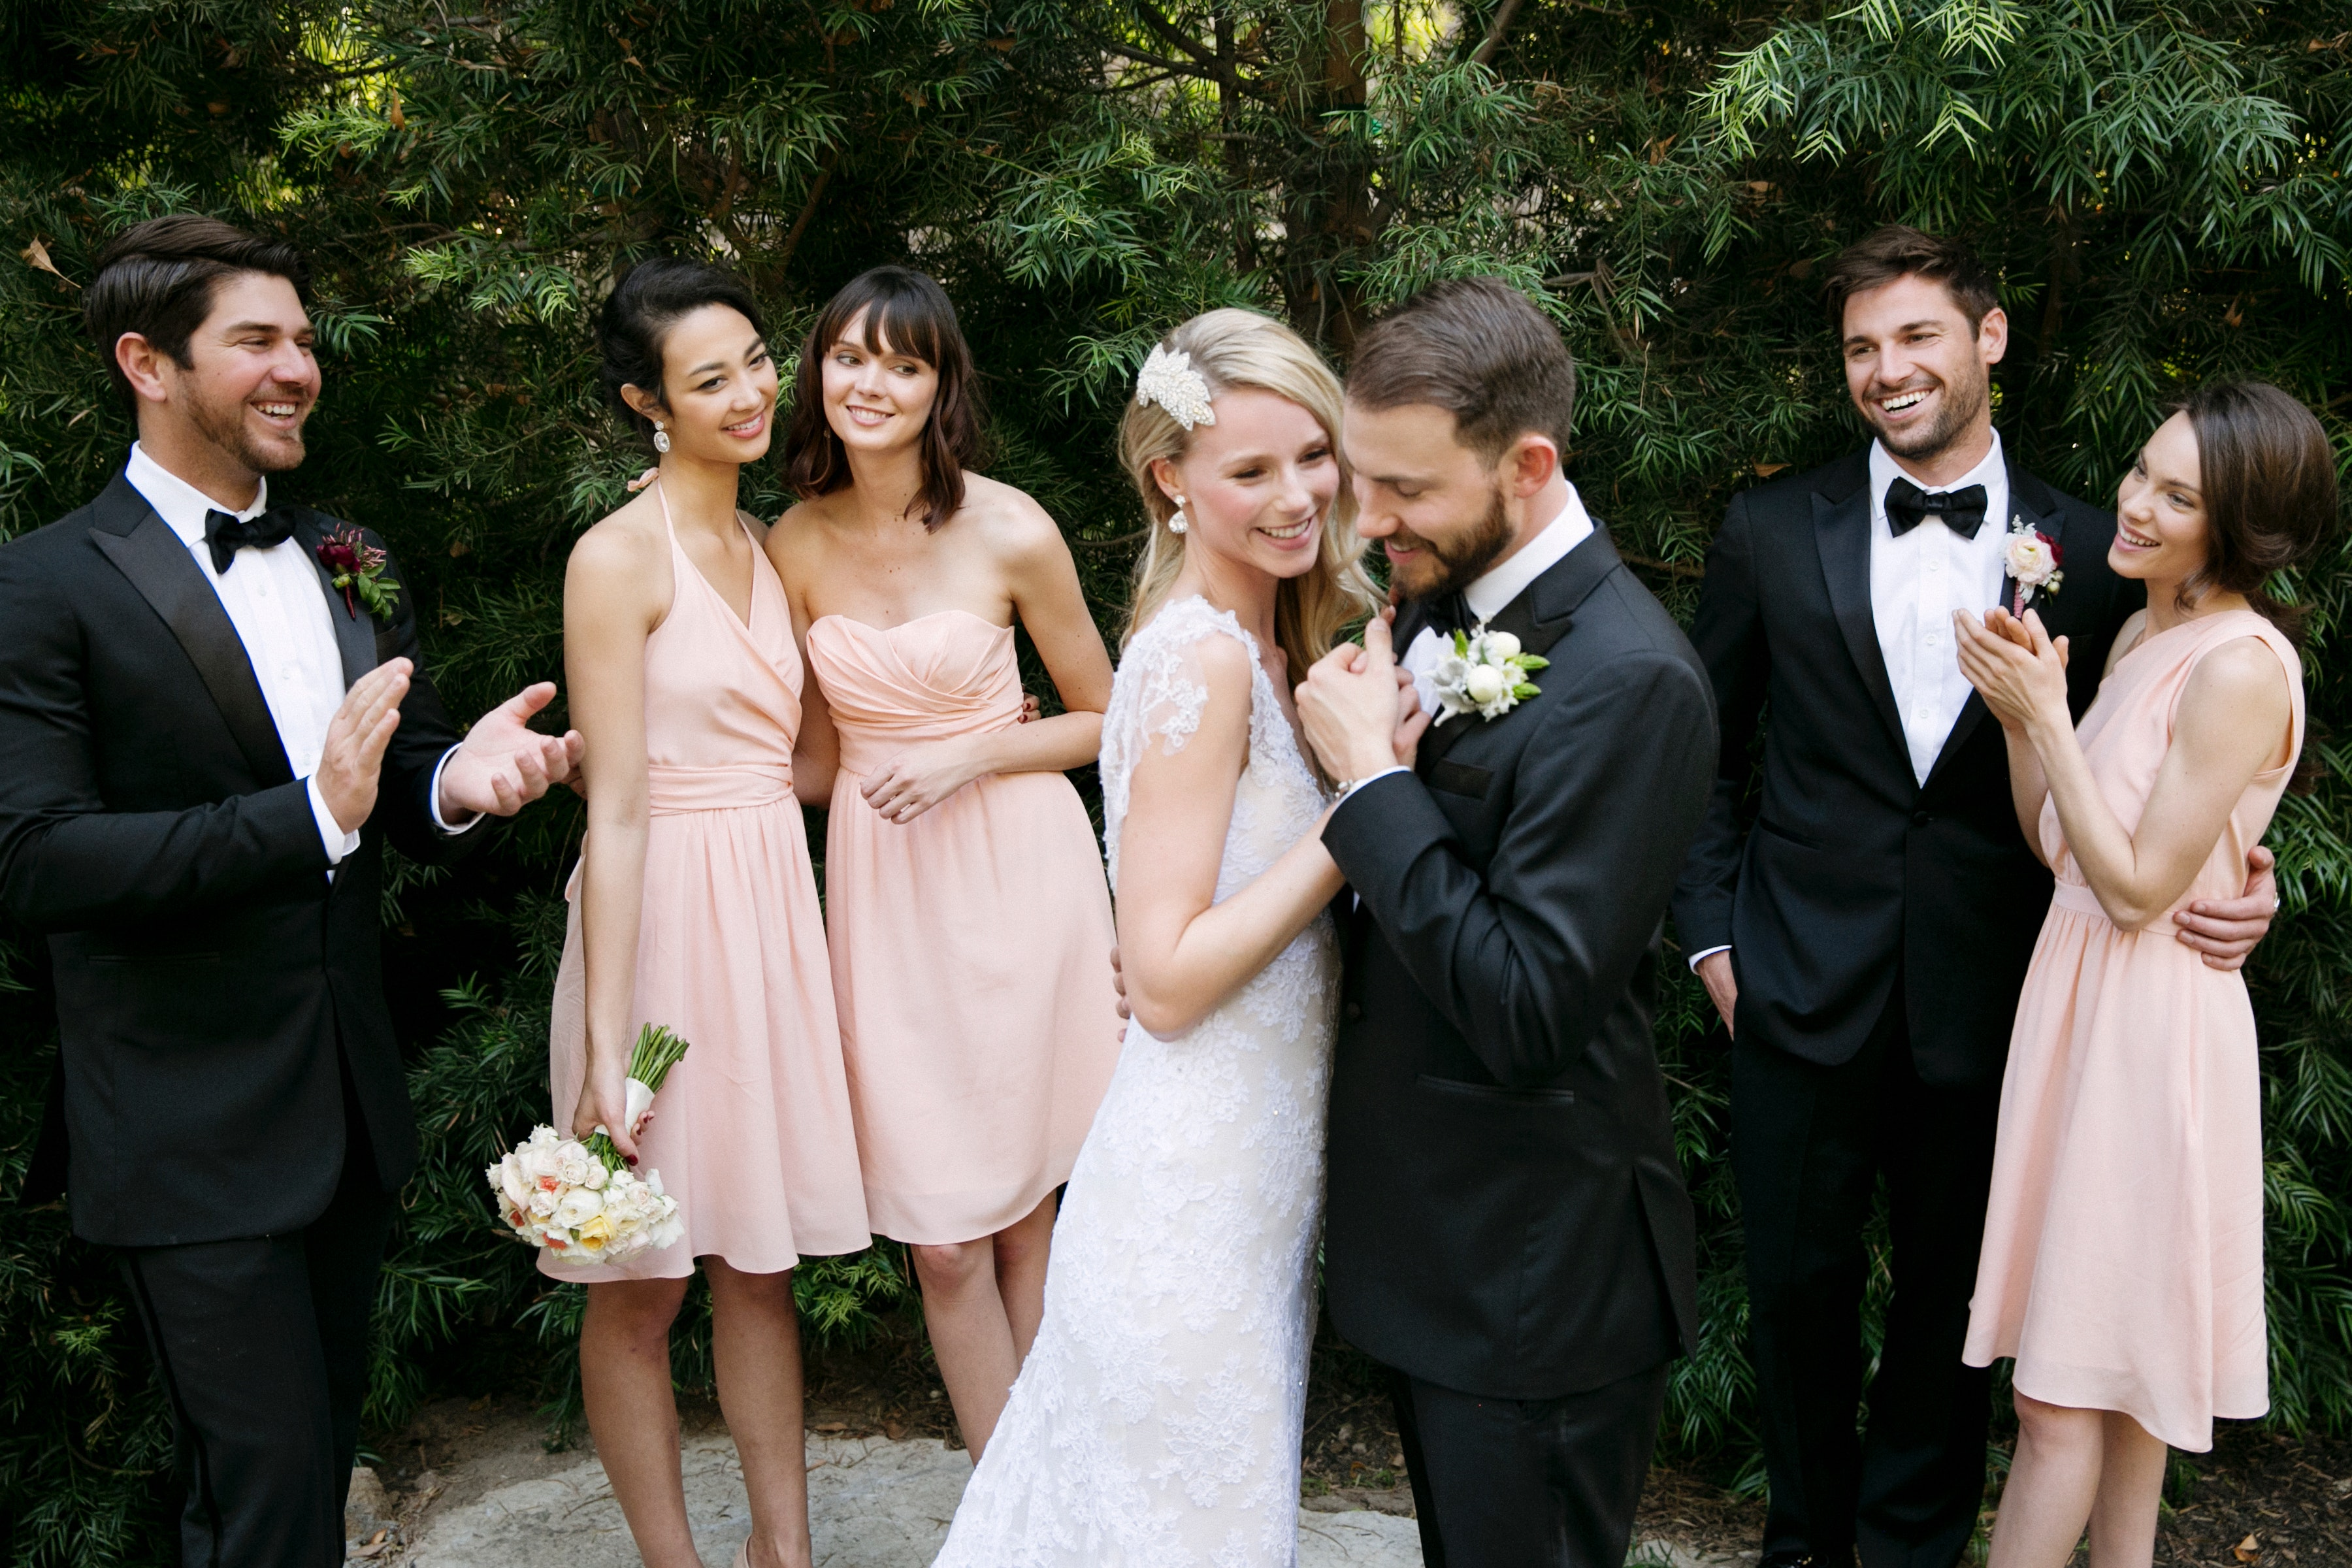 8 reasons renting bridesmaid dresses is brilliant plus how to 8 reasons renting bridesmaid dresses is brilliant plus how to convince your bride to get on board ombrellifo Gallery